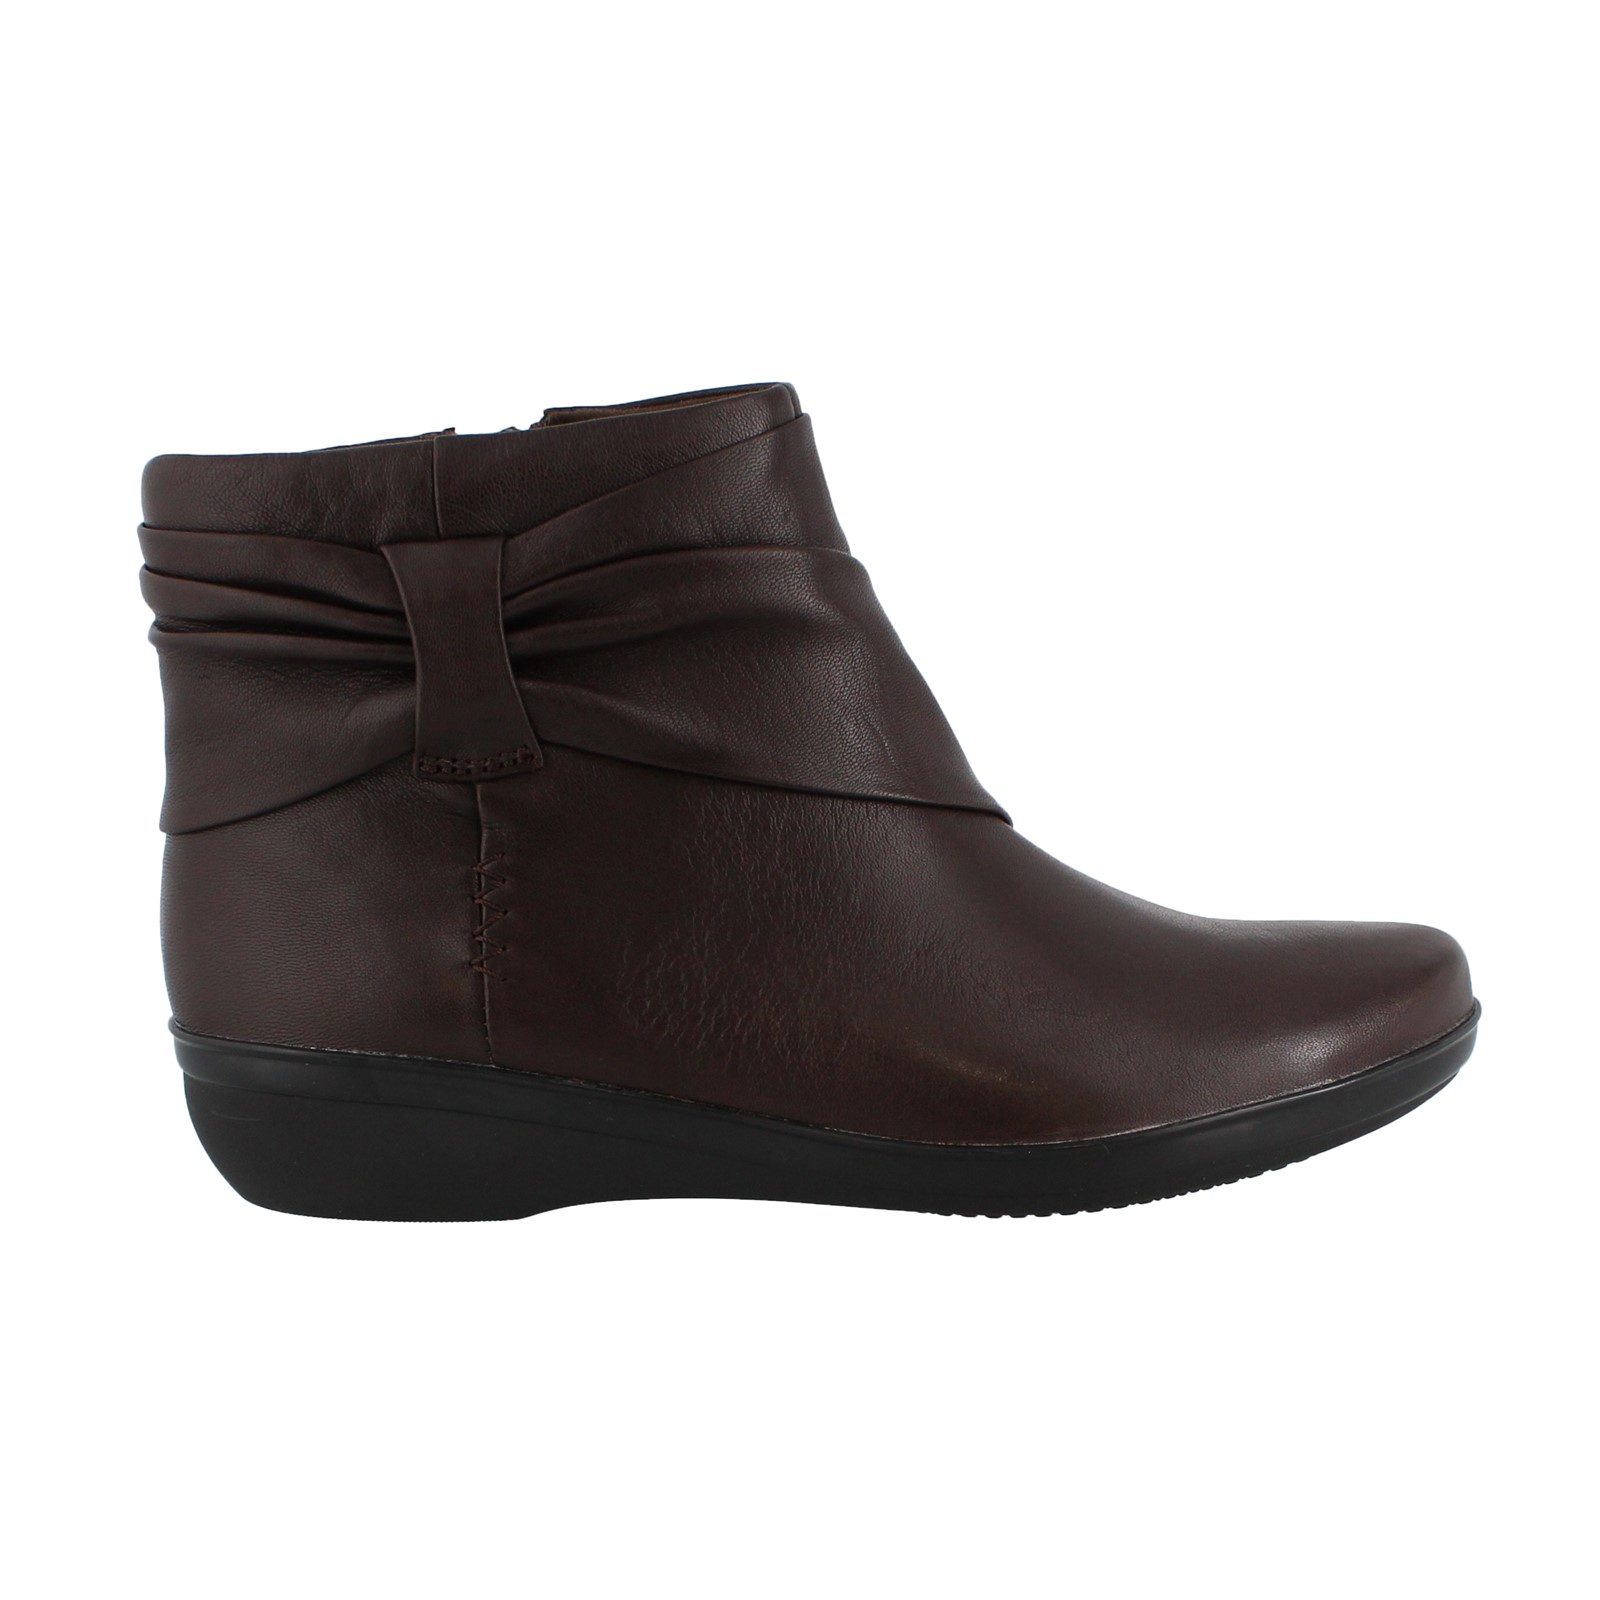 Women's Clarks, Everlay Mandy Ankle Boots